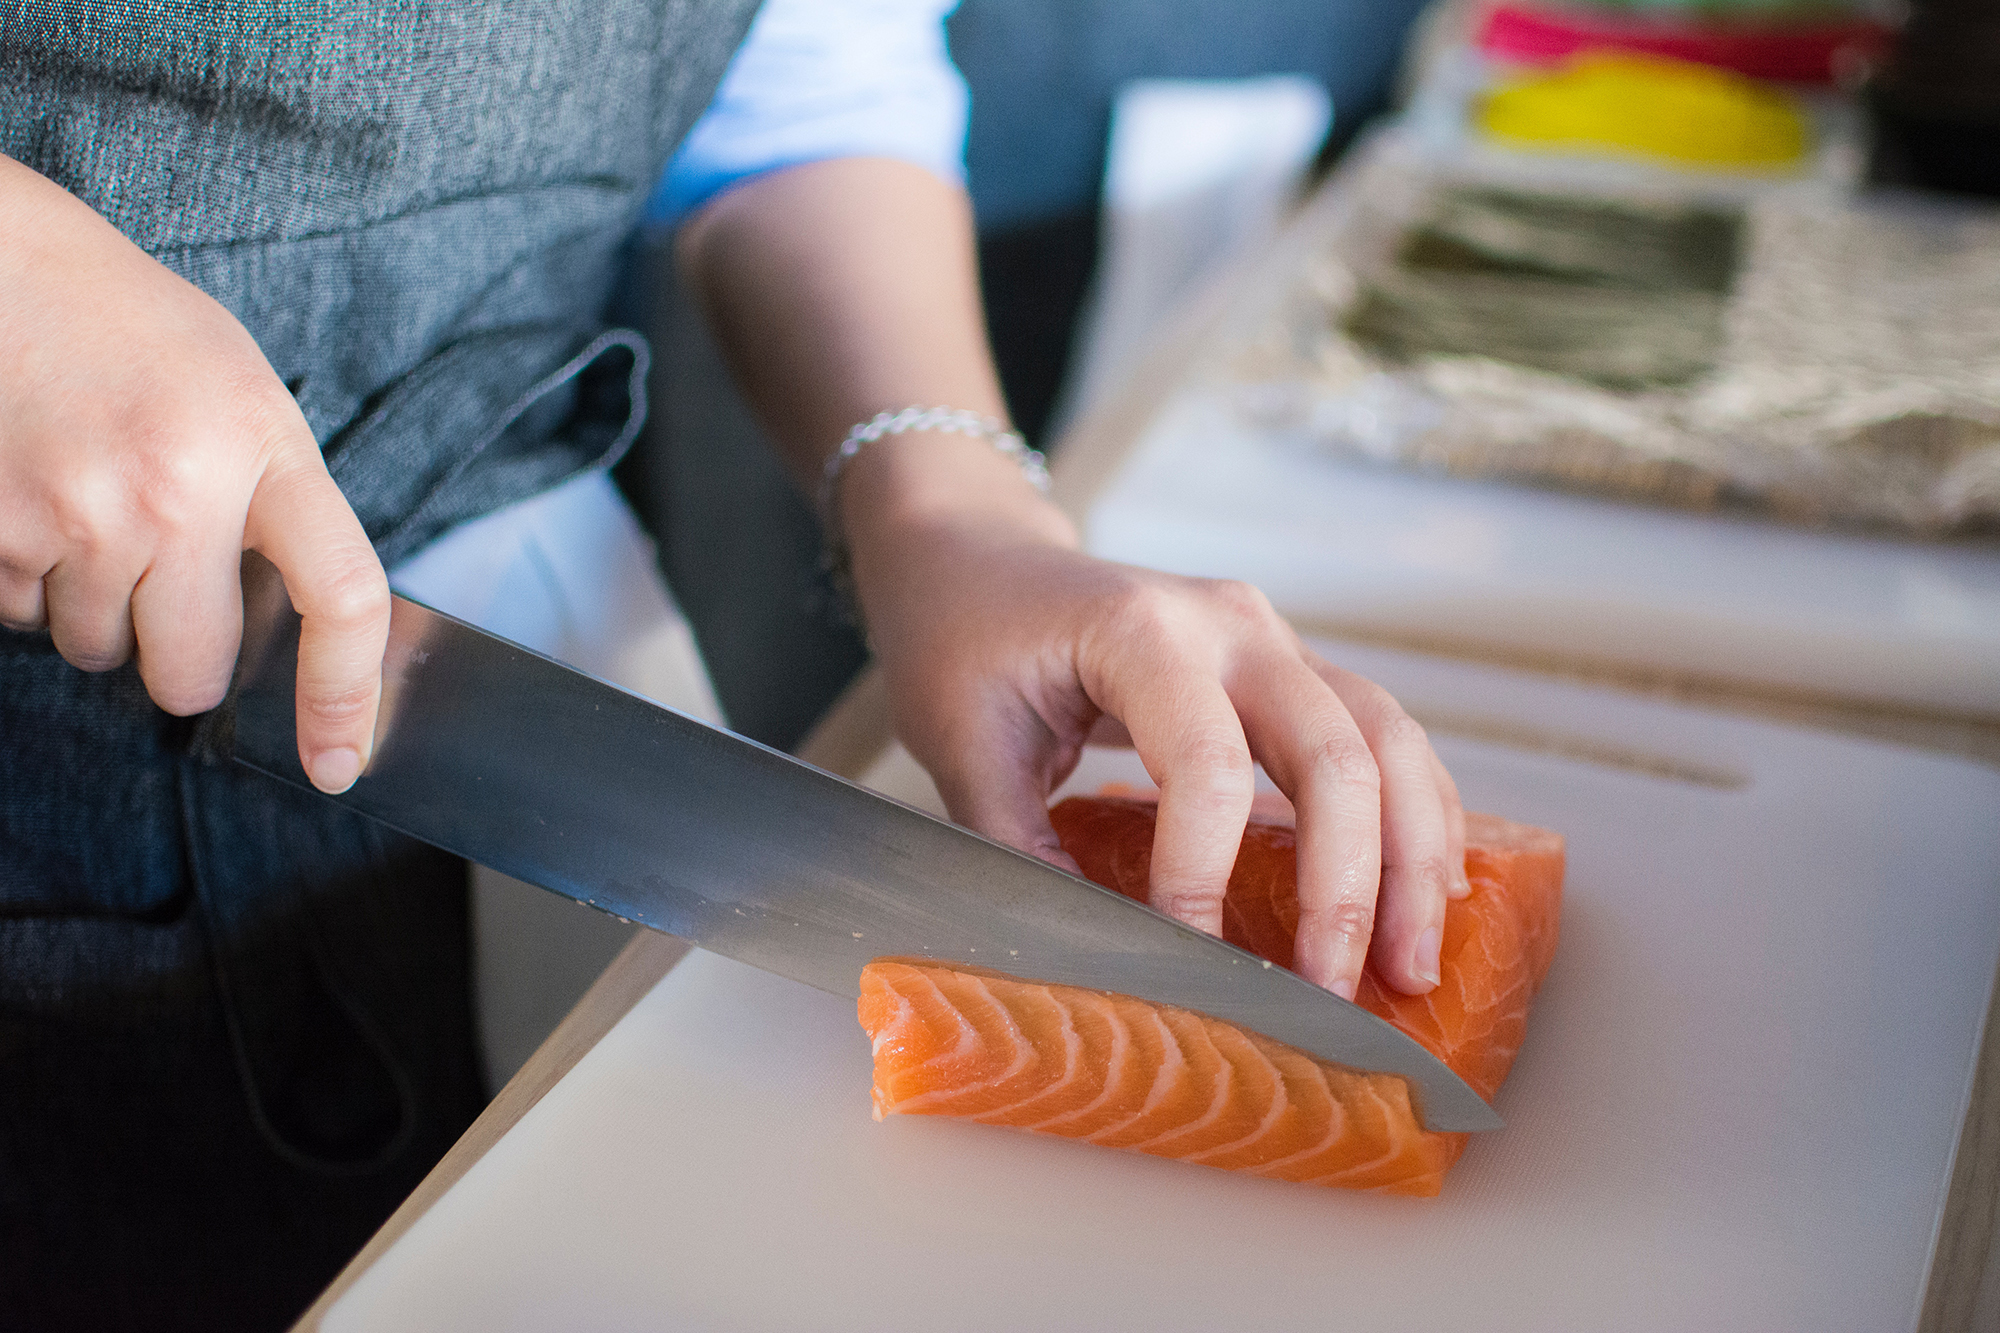 How to Make Smoked Salmon in an Electric Smoker